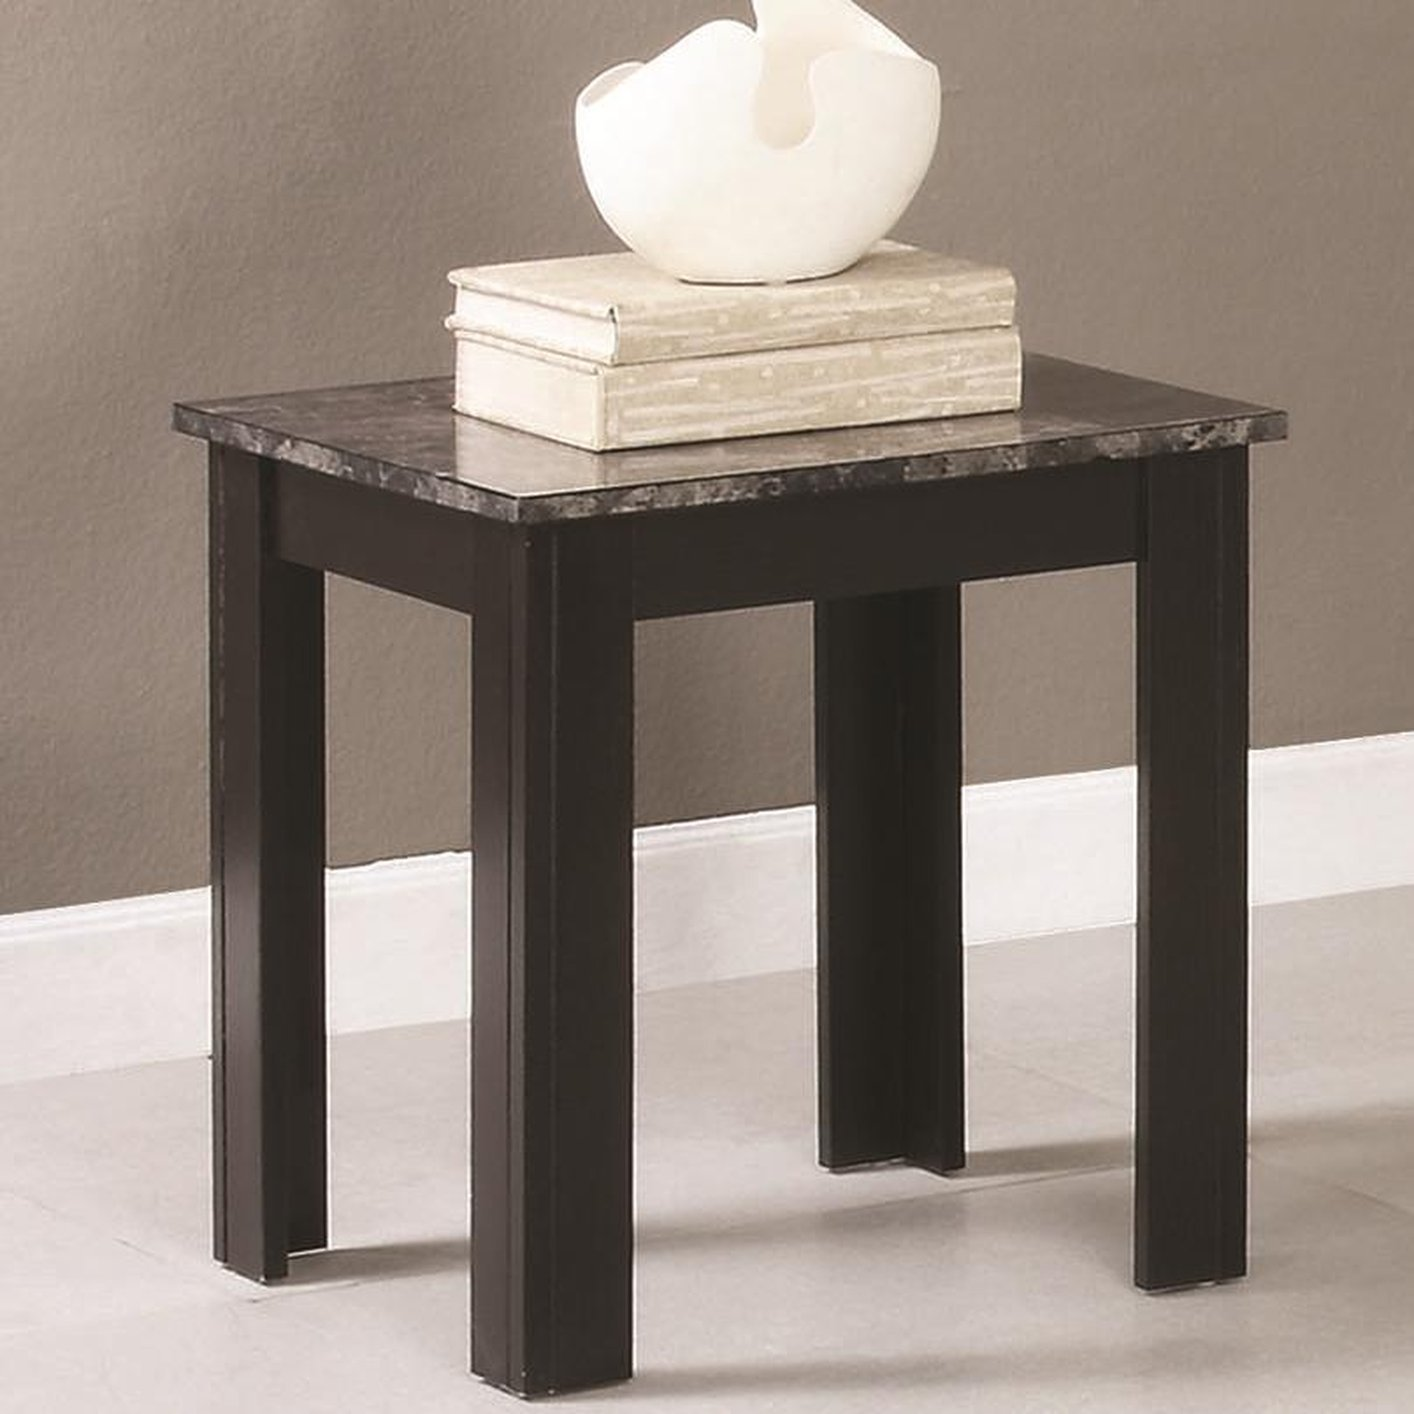 Coffee Table Marble Coffee Table Sets Black Tables Ashley: Black Marble Coffee Table Set